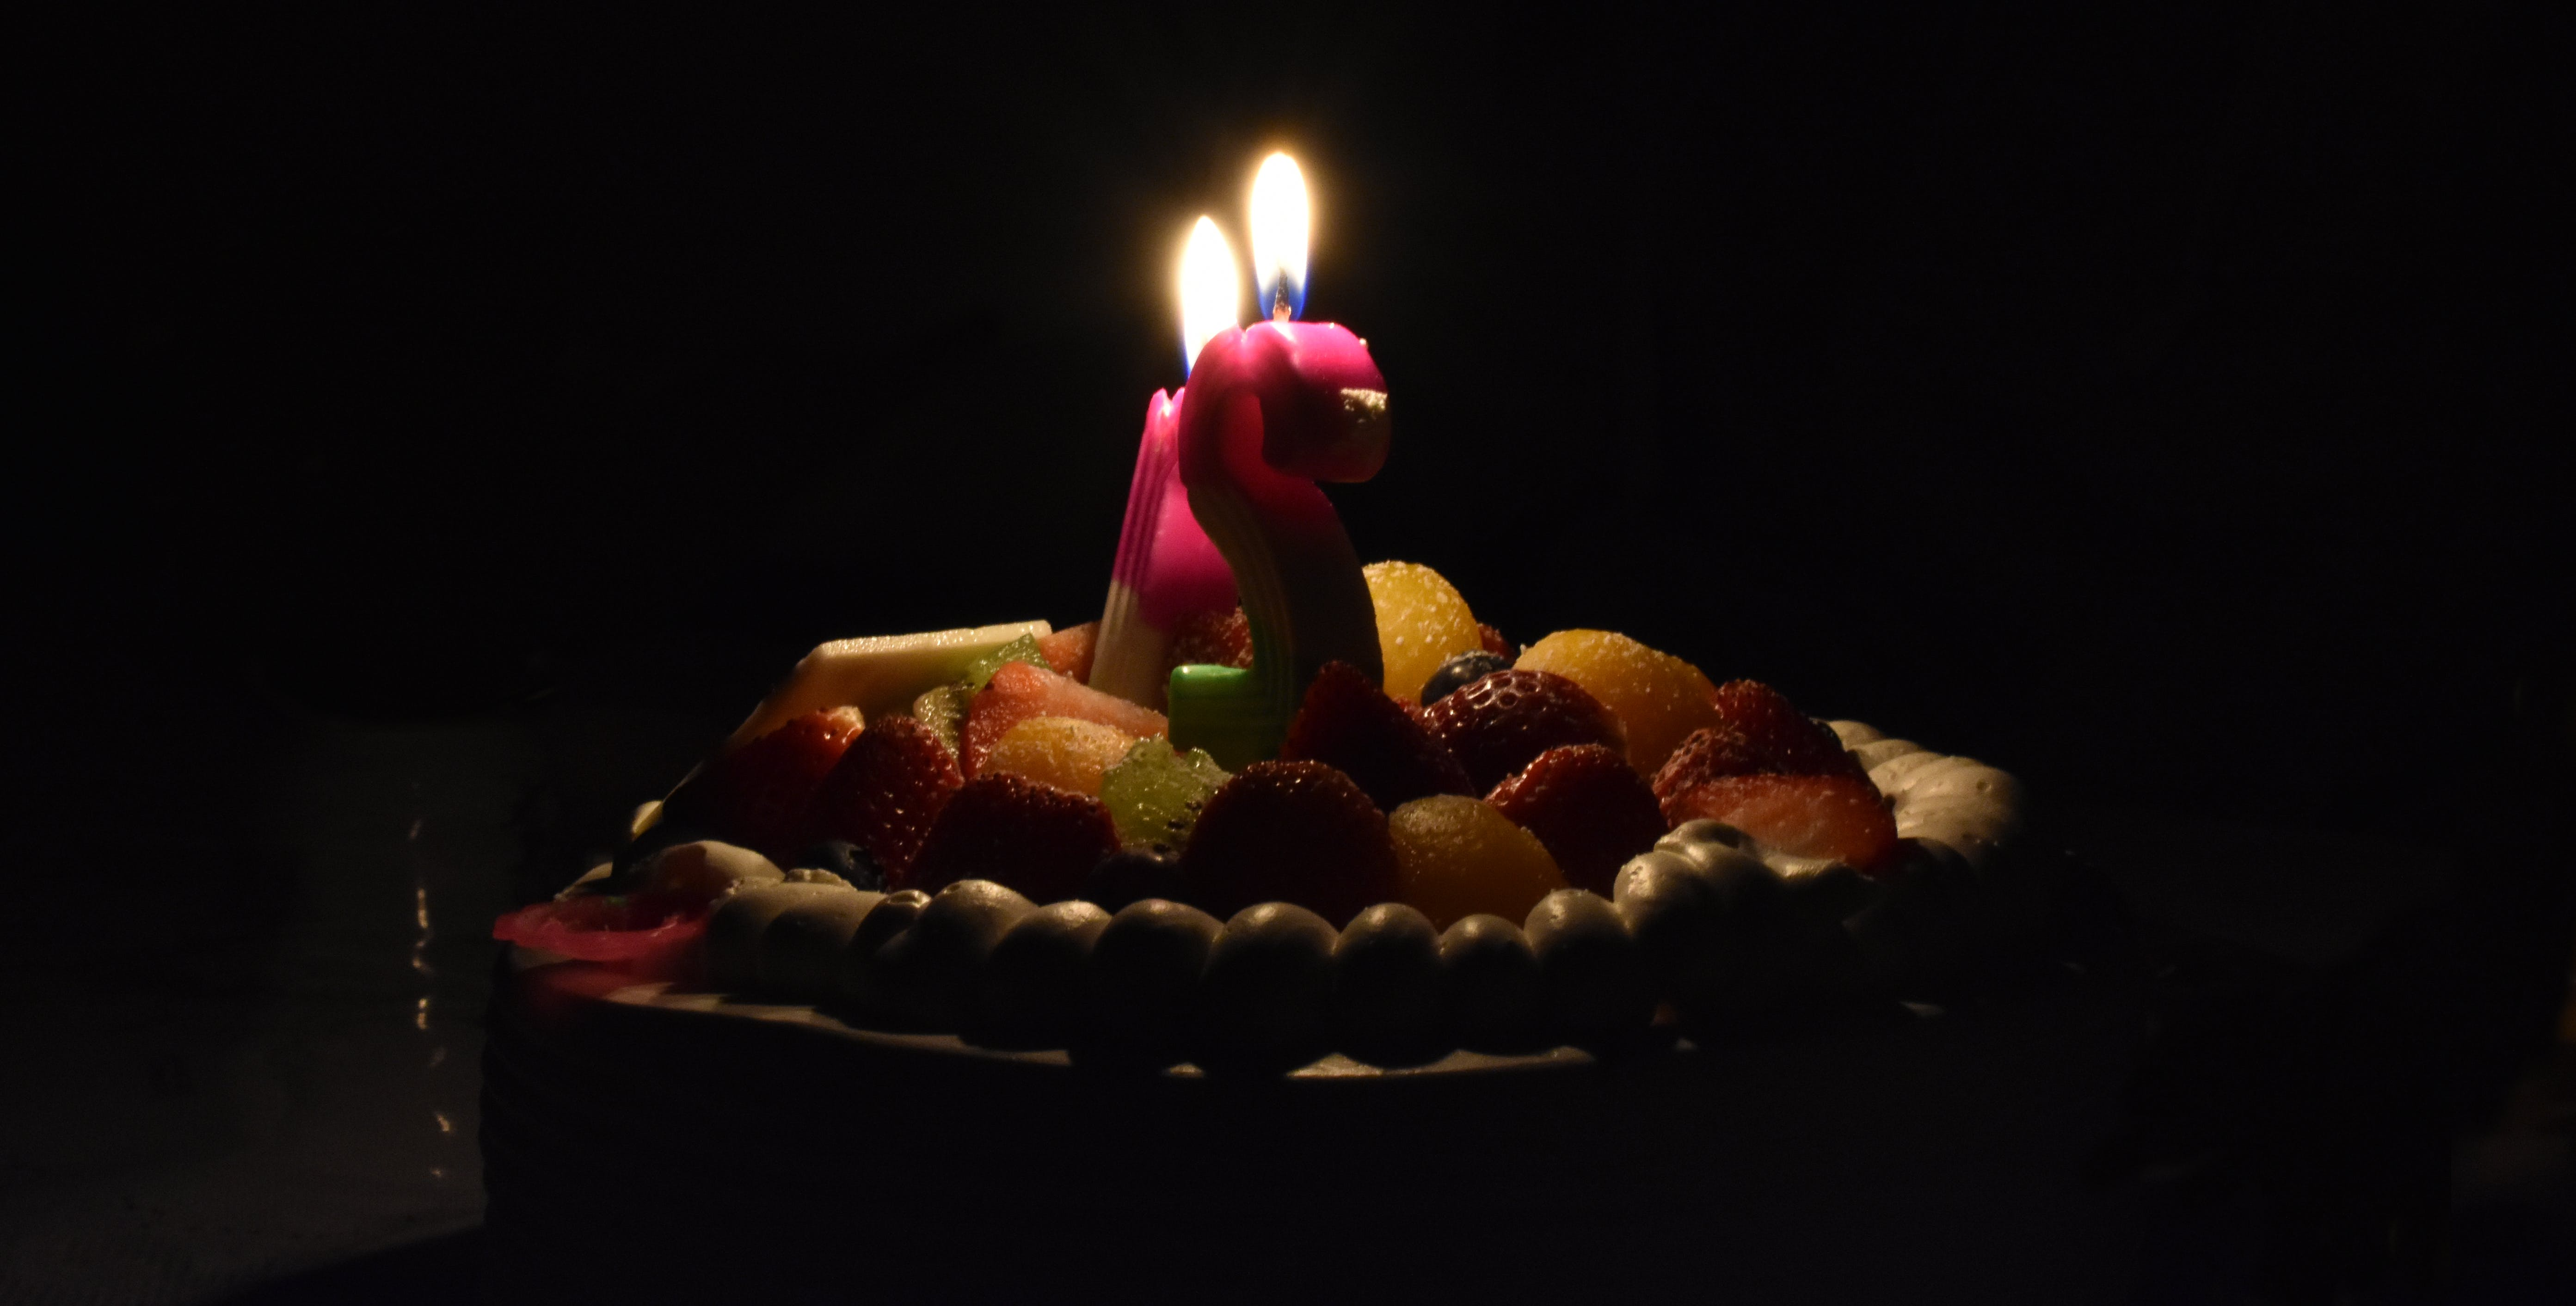 Free stock photo of age, birthday, cake, candle